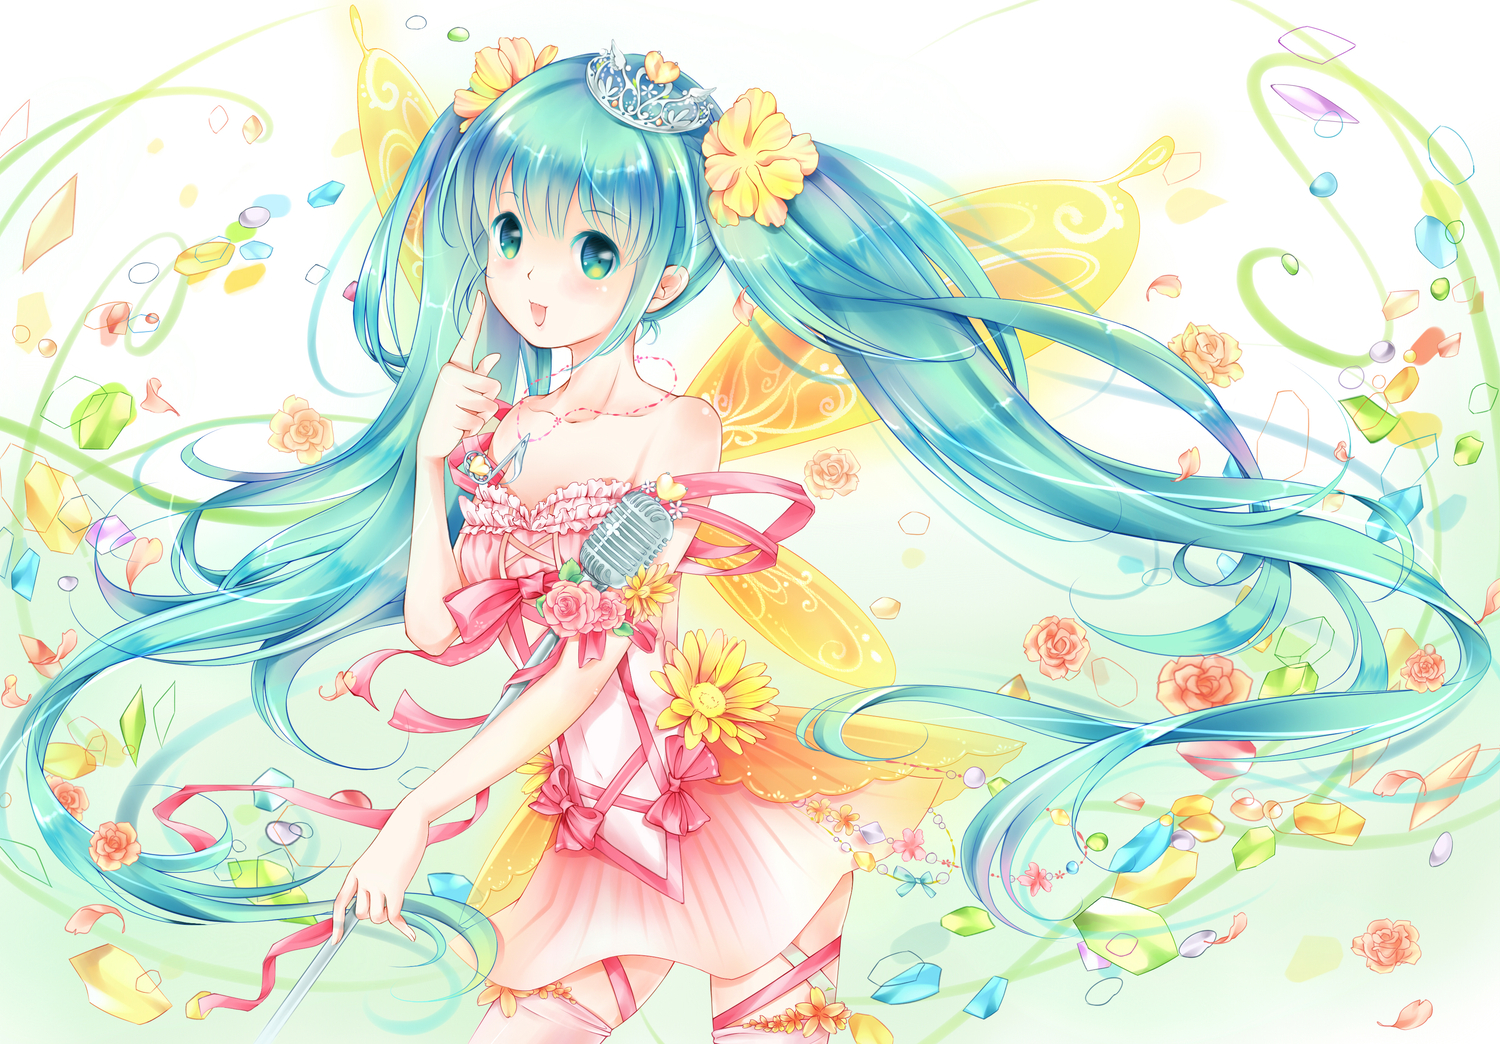 aqua_eyes aqua_hair dress emurina flowers hatsune_miku long_hair microphone thighhighs twintails vocaloid wings